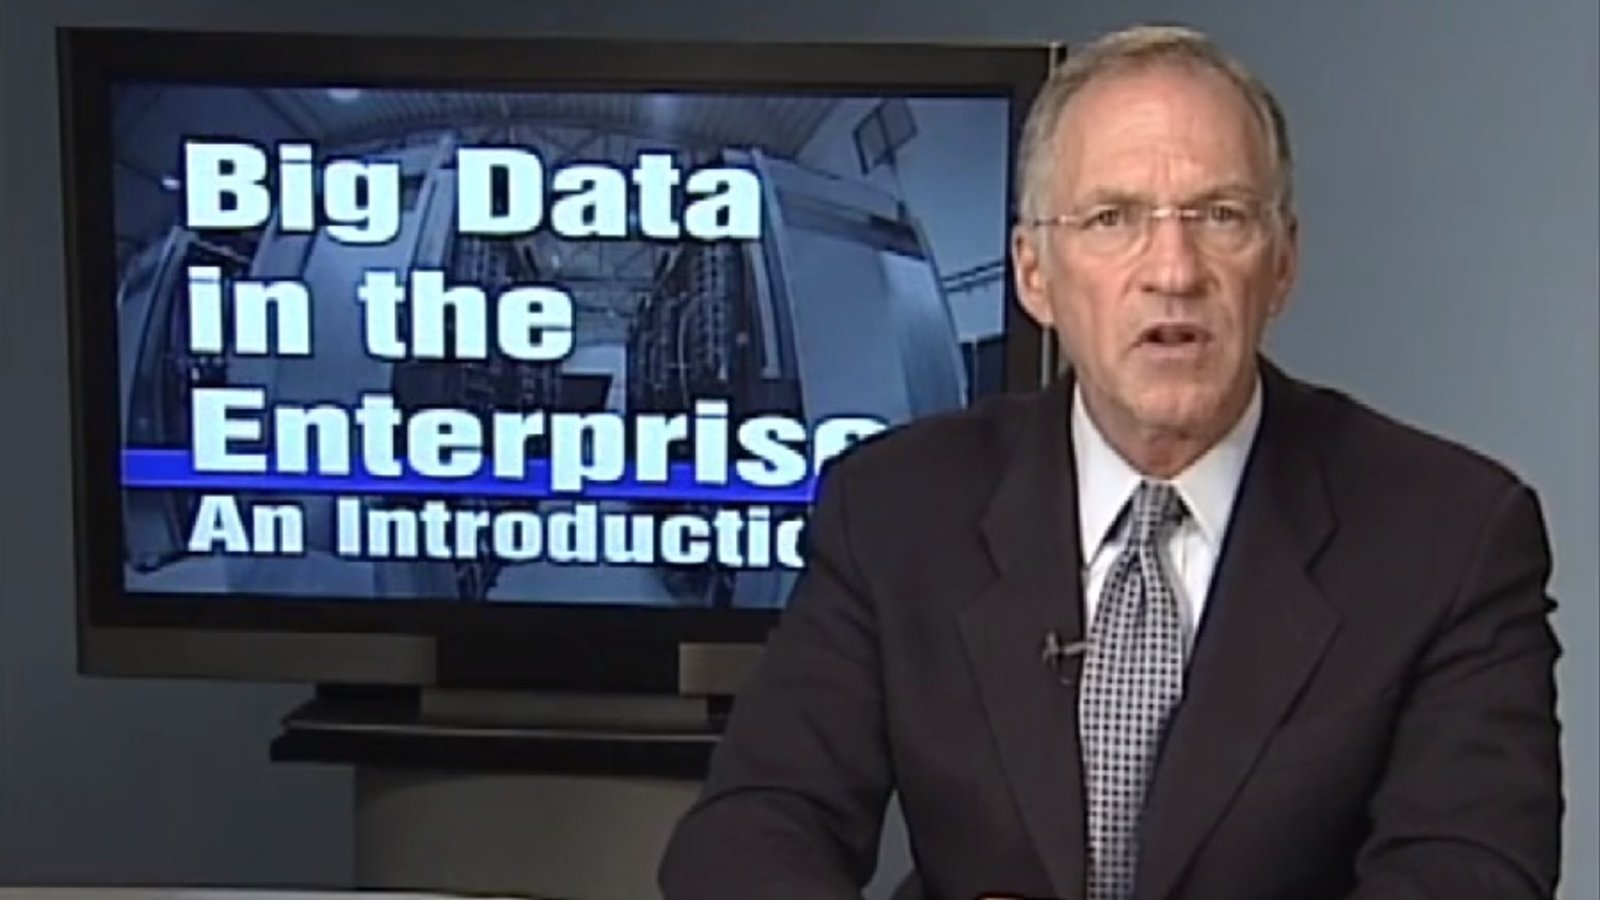 Big Data in the Enterprise: An Introduction